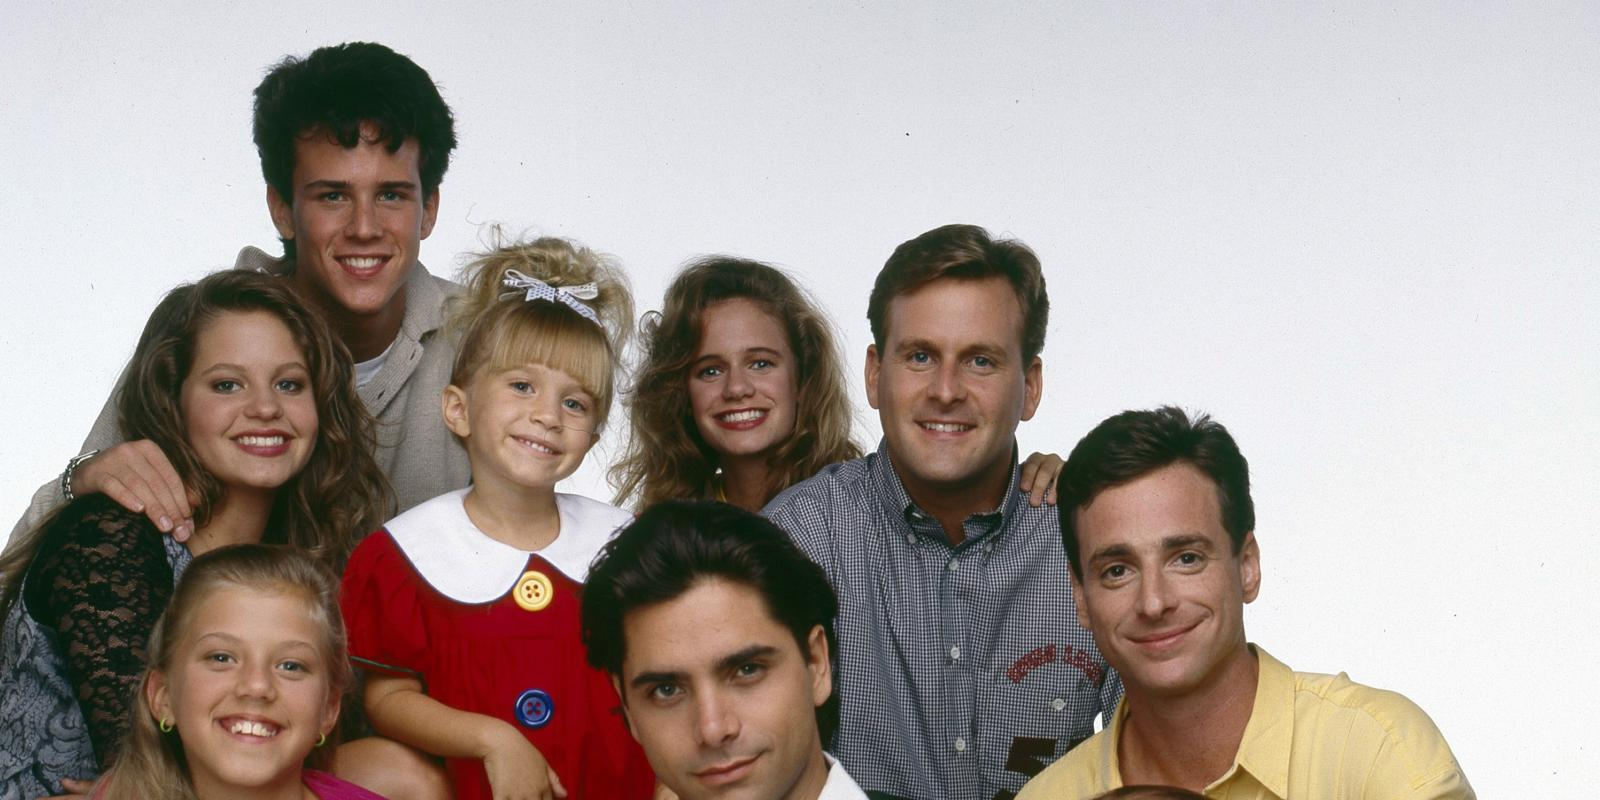 Full house is coming back a handy guide for newcomers for Fully house